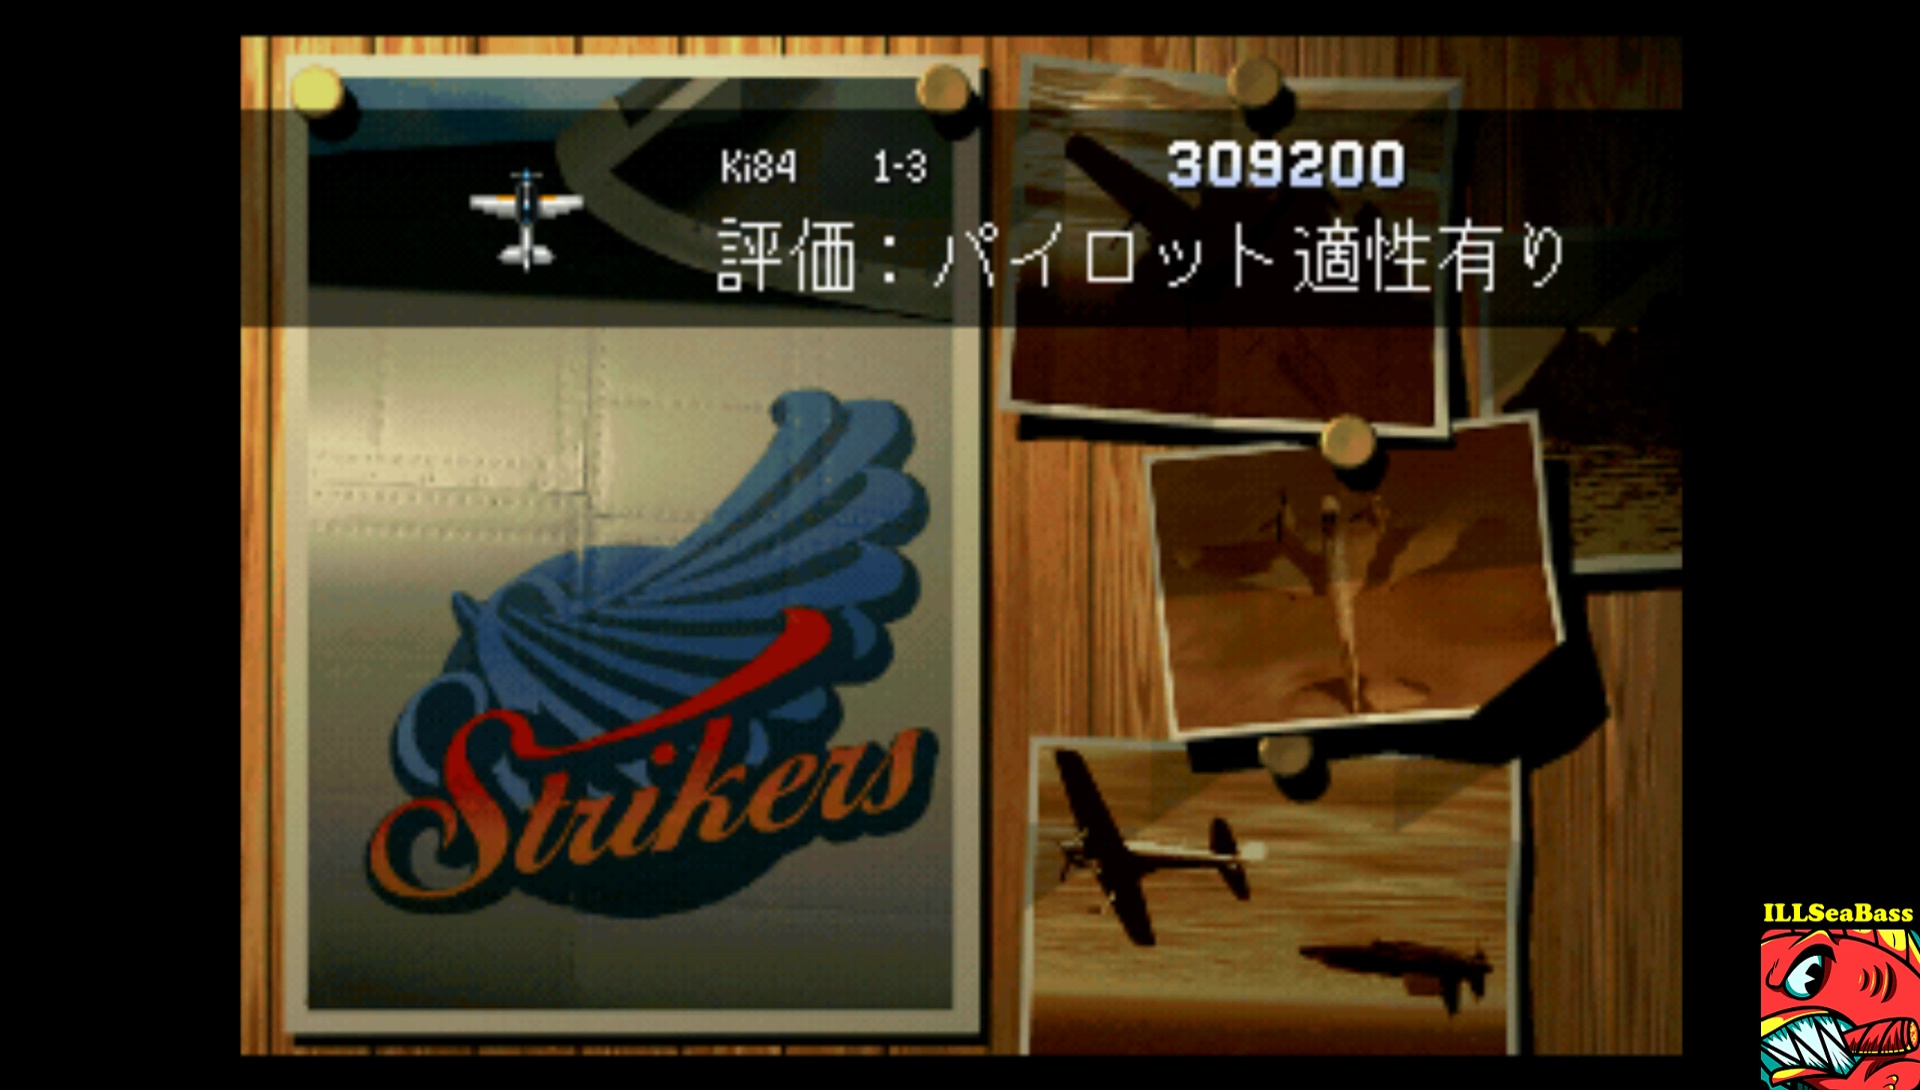 ILLSeaBass: Strikers 1945 II (Playstation 1 Emulated) 309,200 points on 2017-02-14 22:16:15